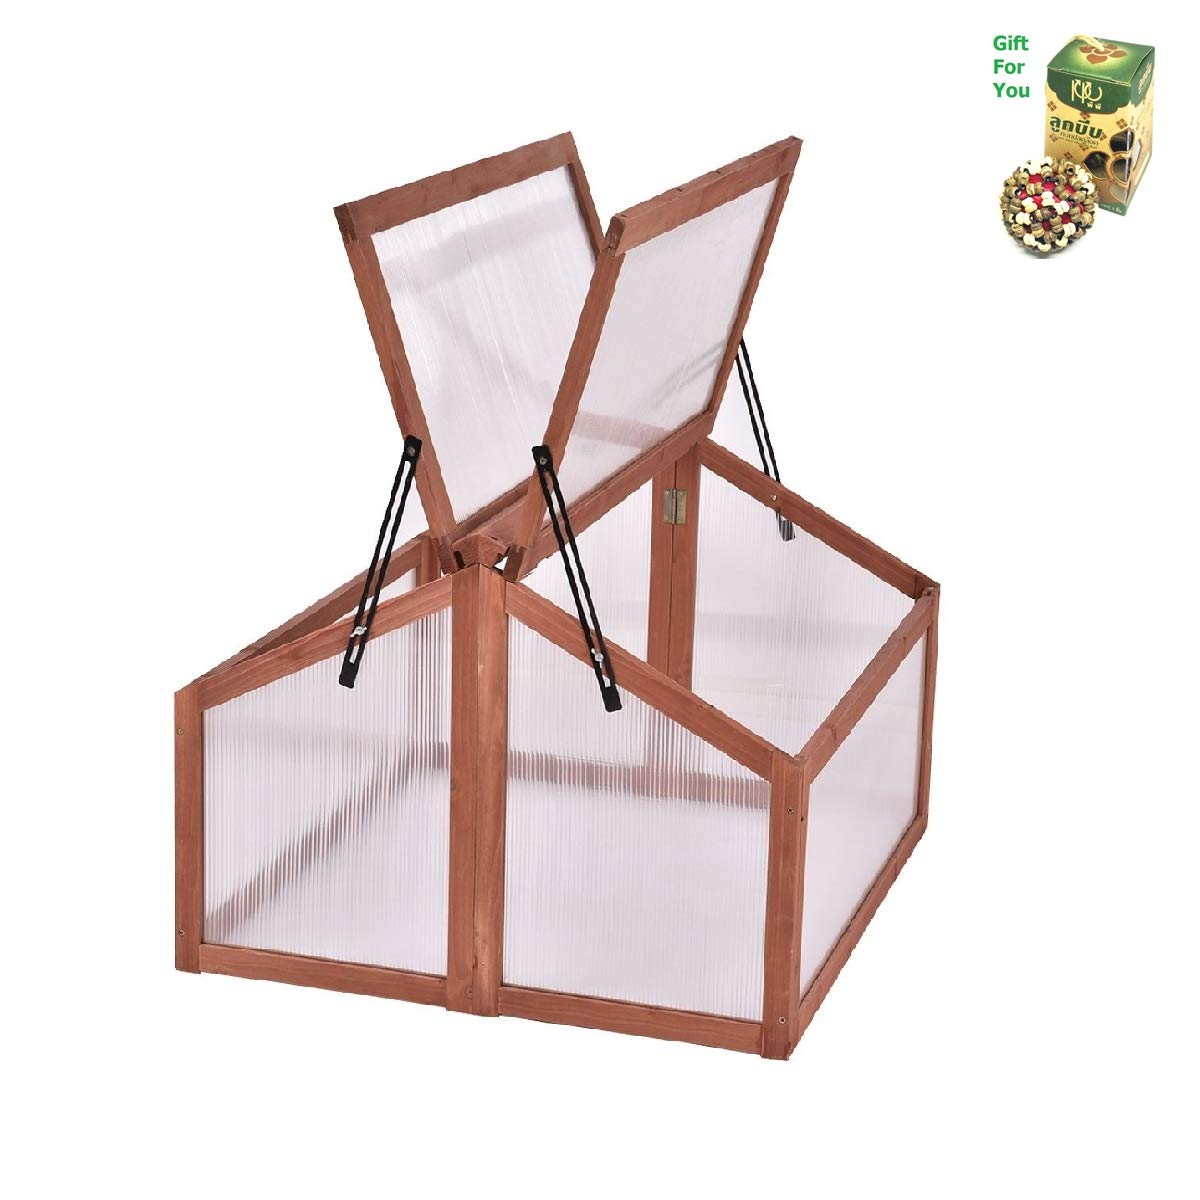 Double Box Garden Wooden Greenhouse by SpiritOne + Gift Coconut Shell Massage Ball